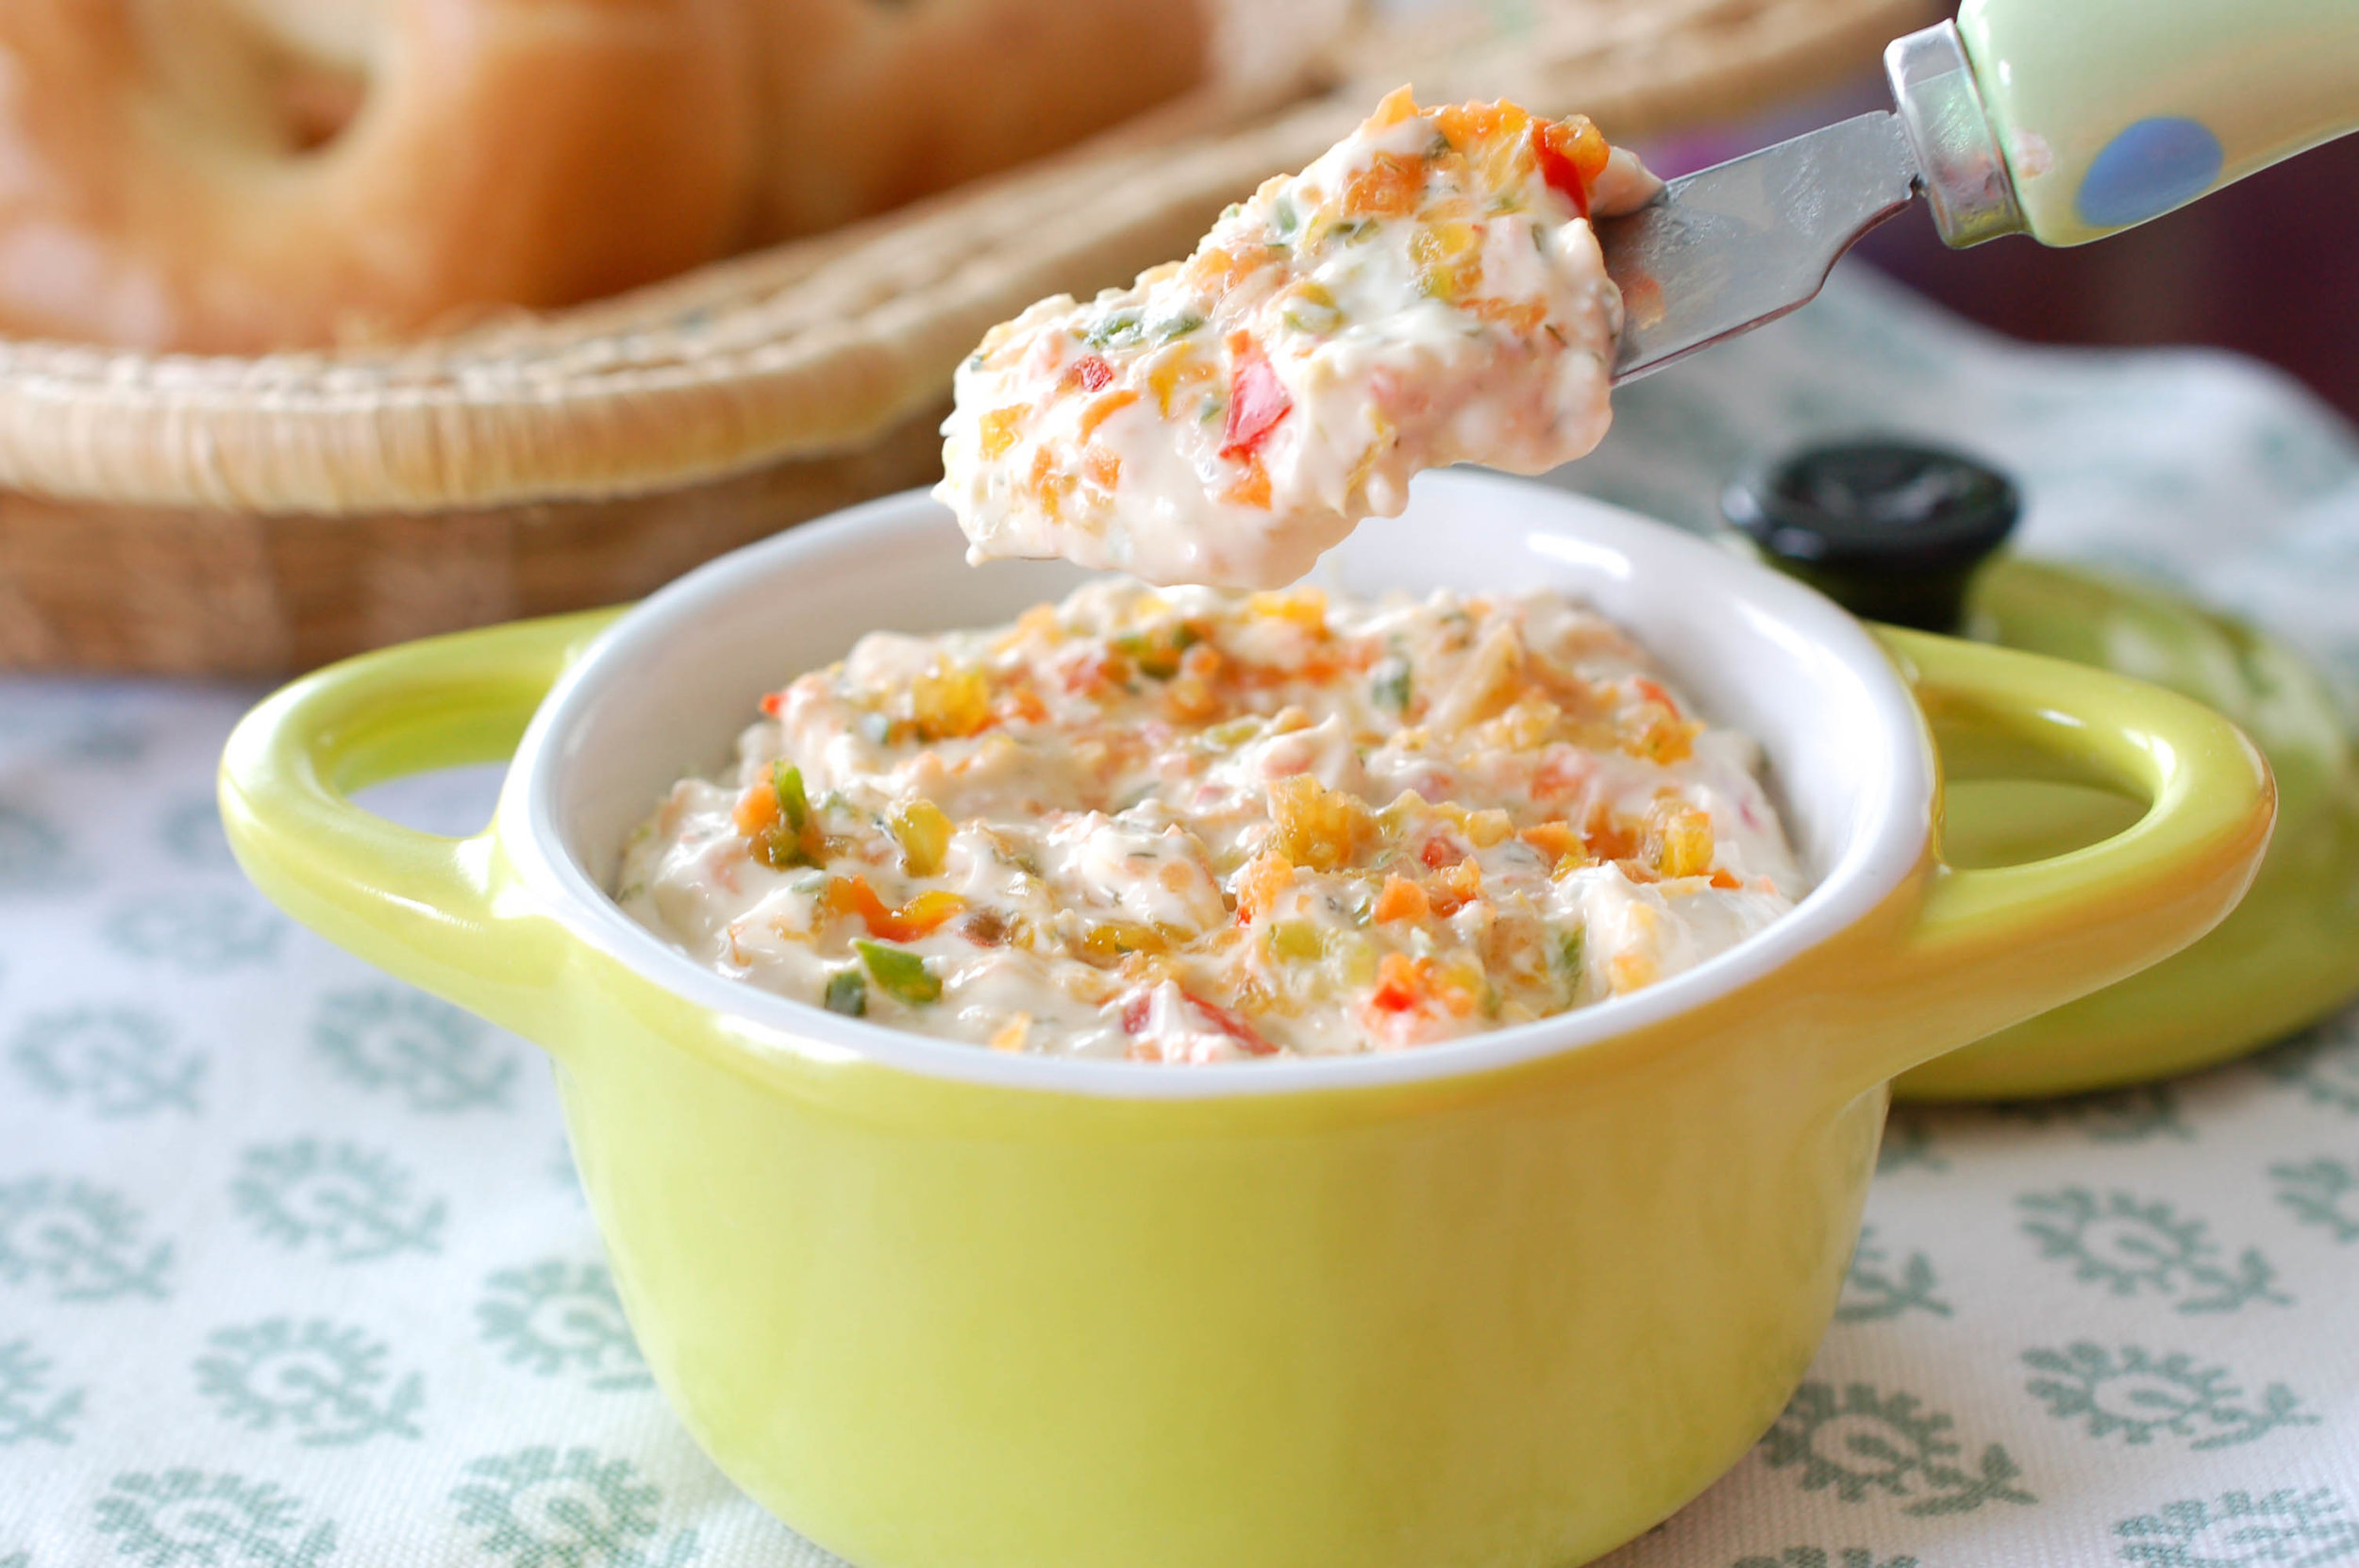 Vegetable Cream Cheese Spread Recipe